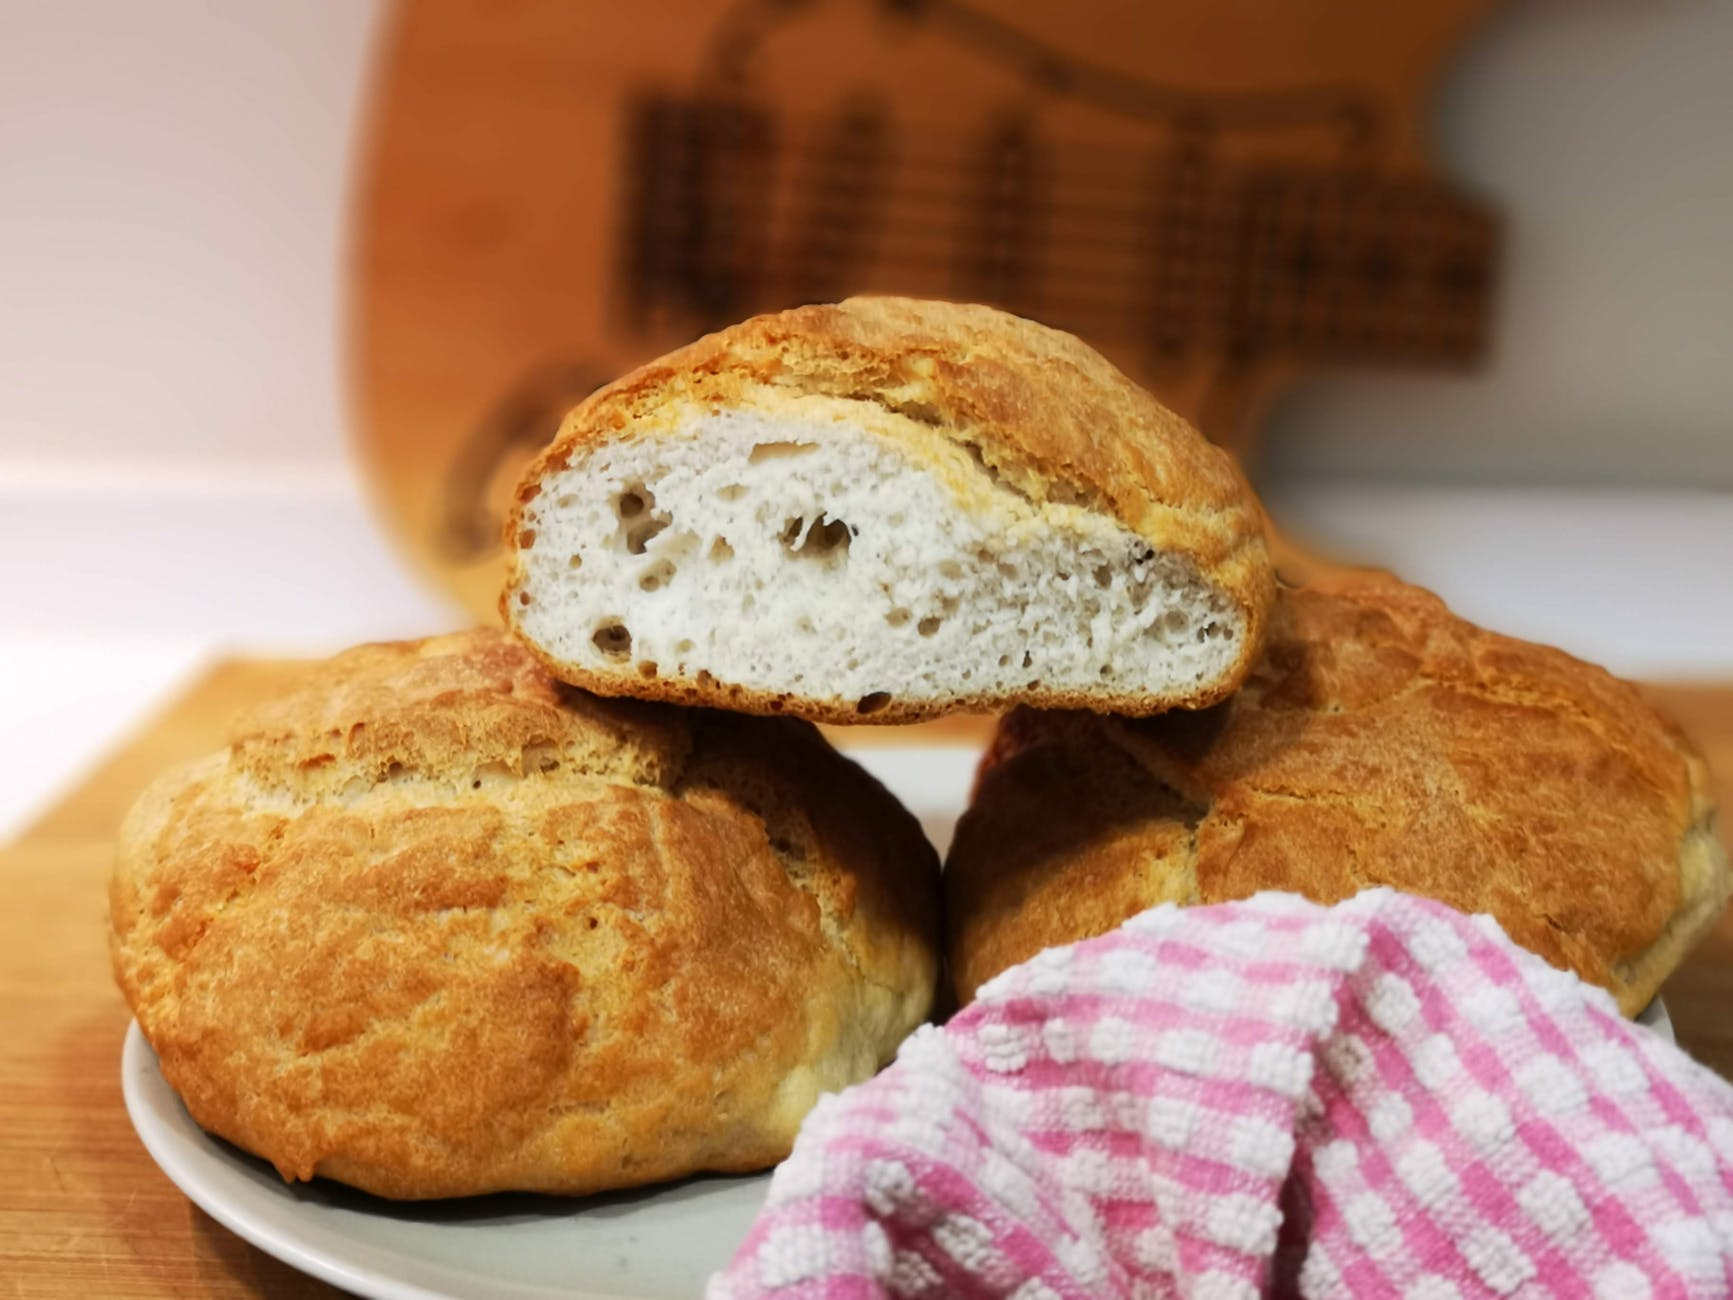 photo of breads on plate